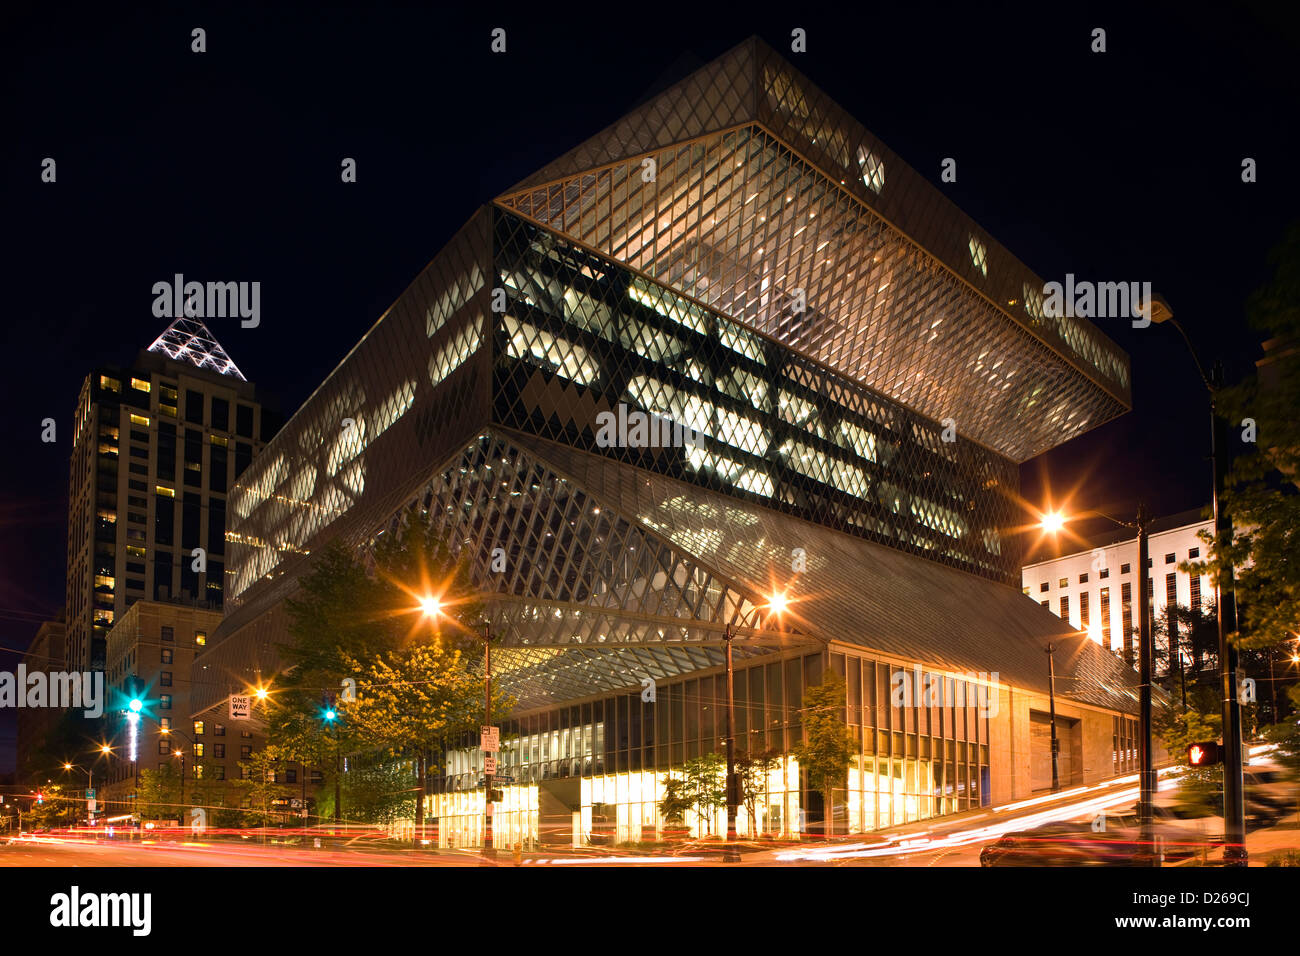 CENTRAL PUBLIC LIBRARY DOWNTOWN SEATTLE WASHINGTON STATE USA - Stock Image